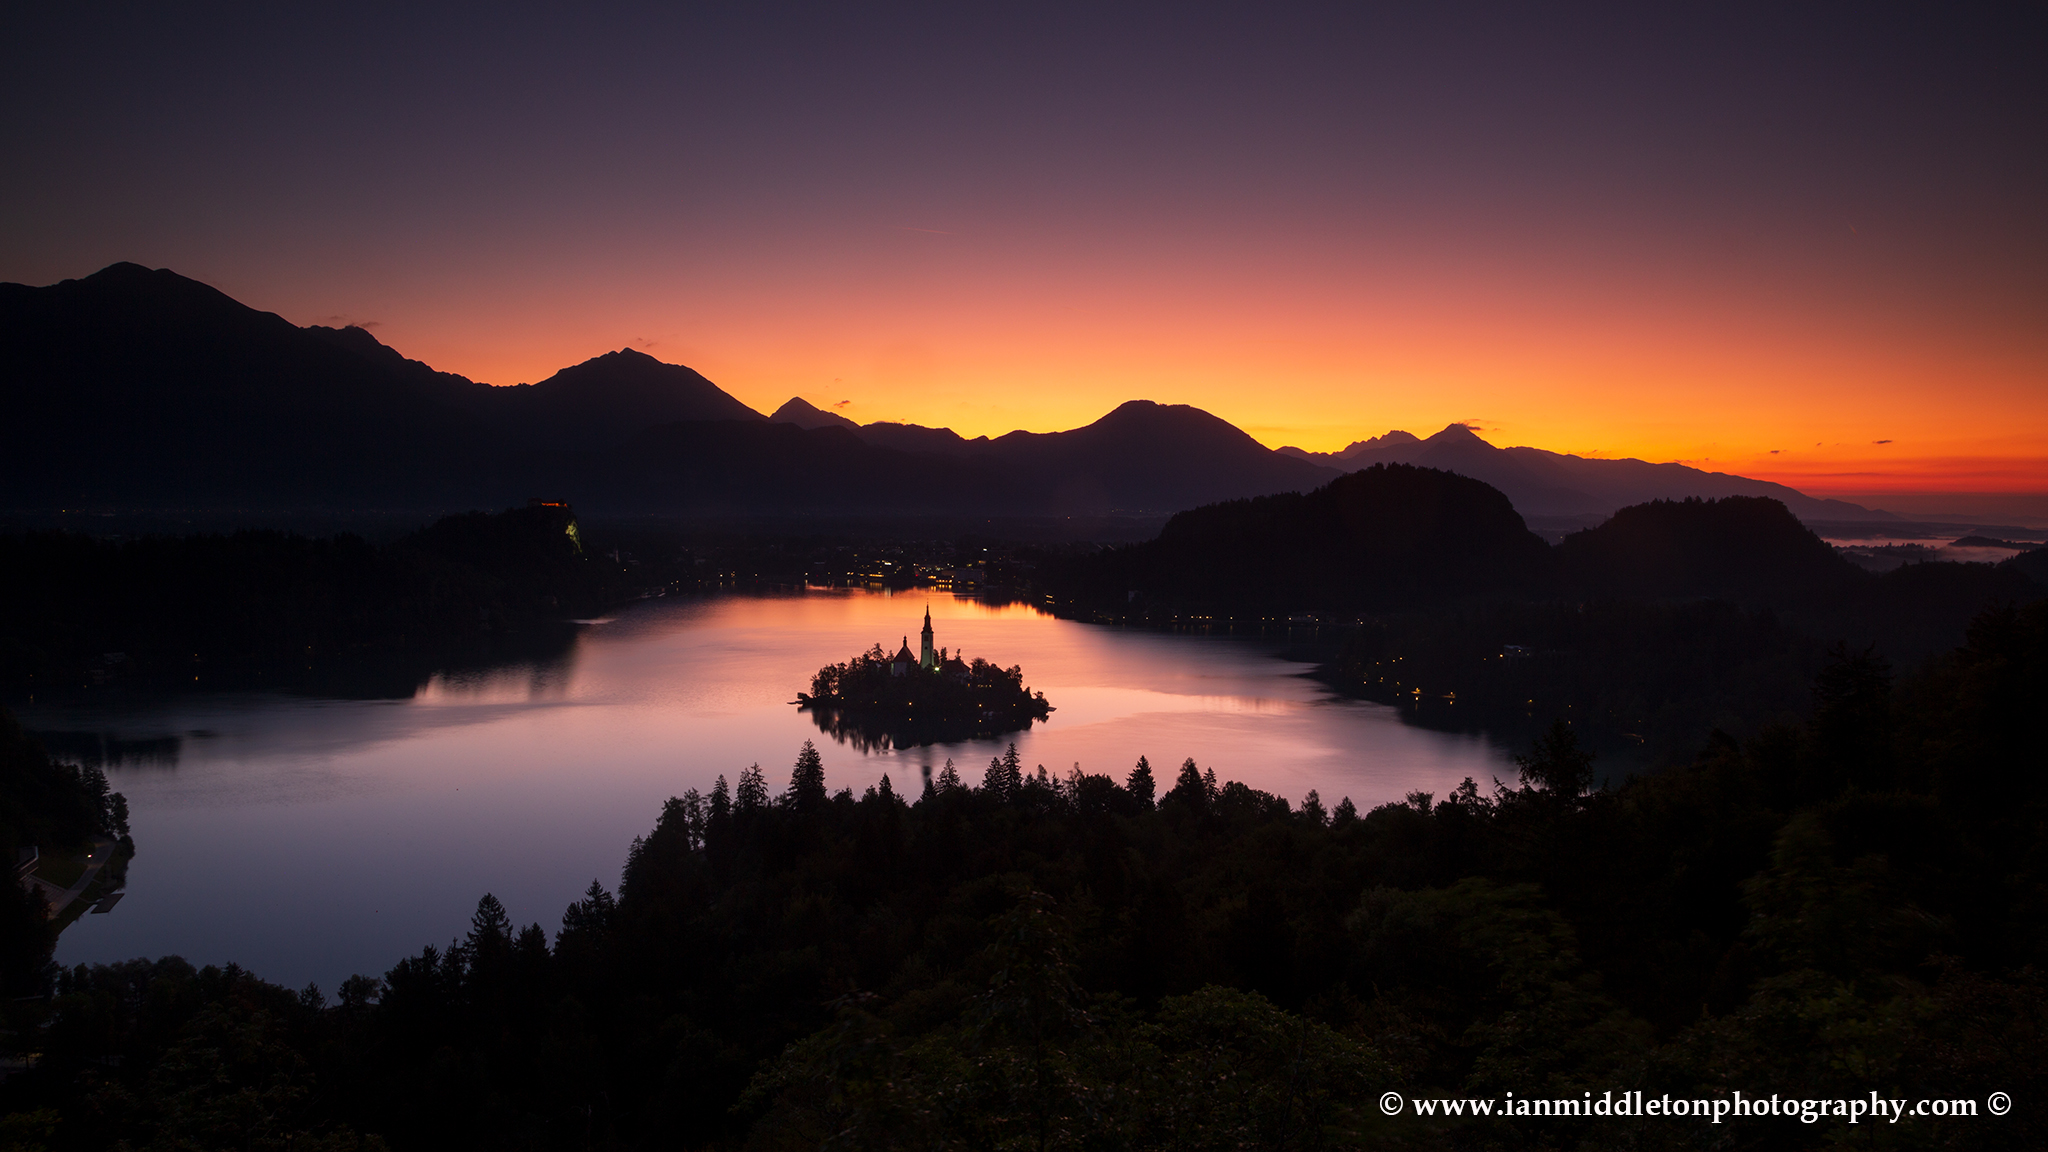 Sunrise from the viewpoint of Lake Bled to the island church and clifftop castle from Ojstrica, Slovenia. Here you can see the Karavank Alps and the Kamnik Alps